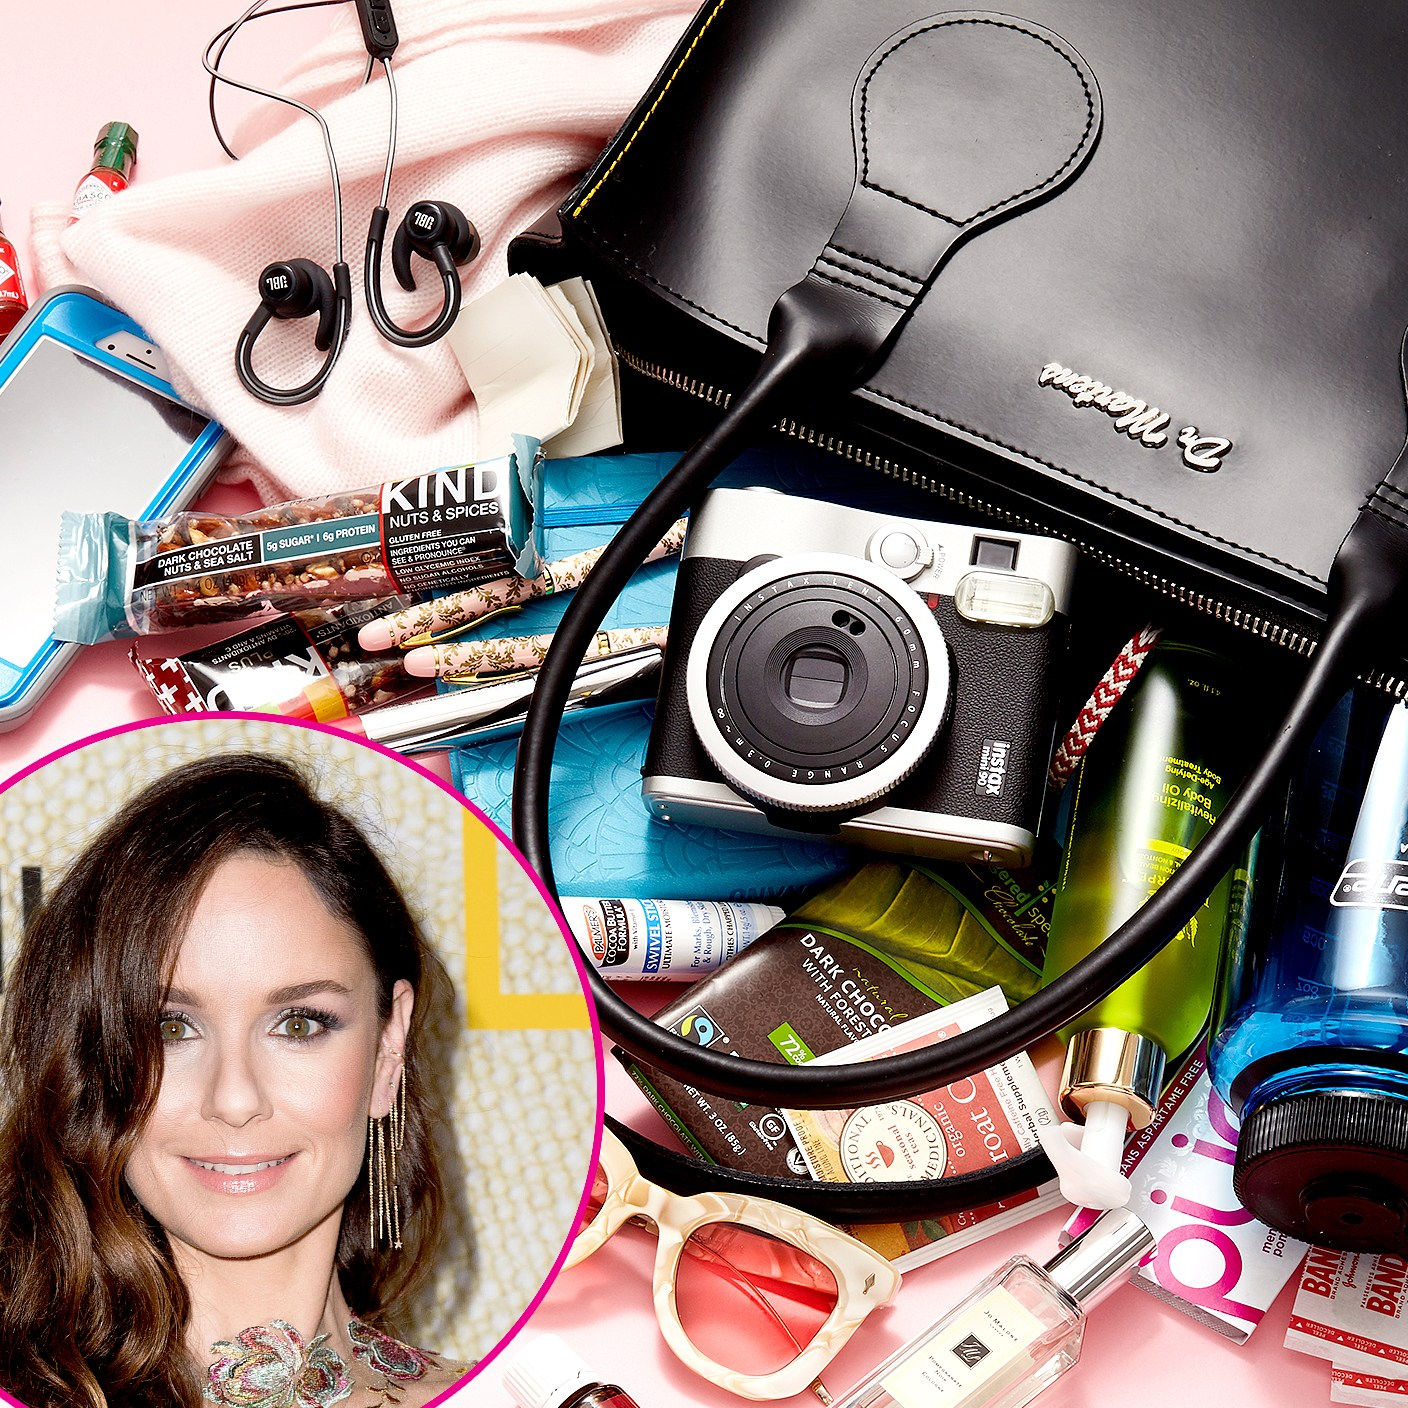 Sarah Wayne Callies' bag